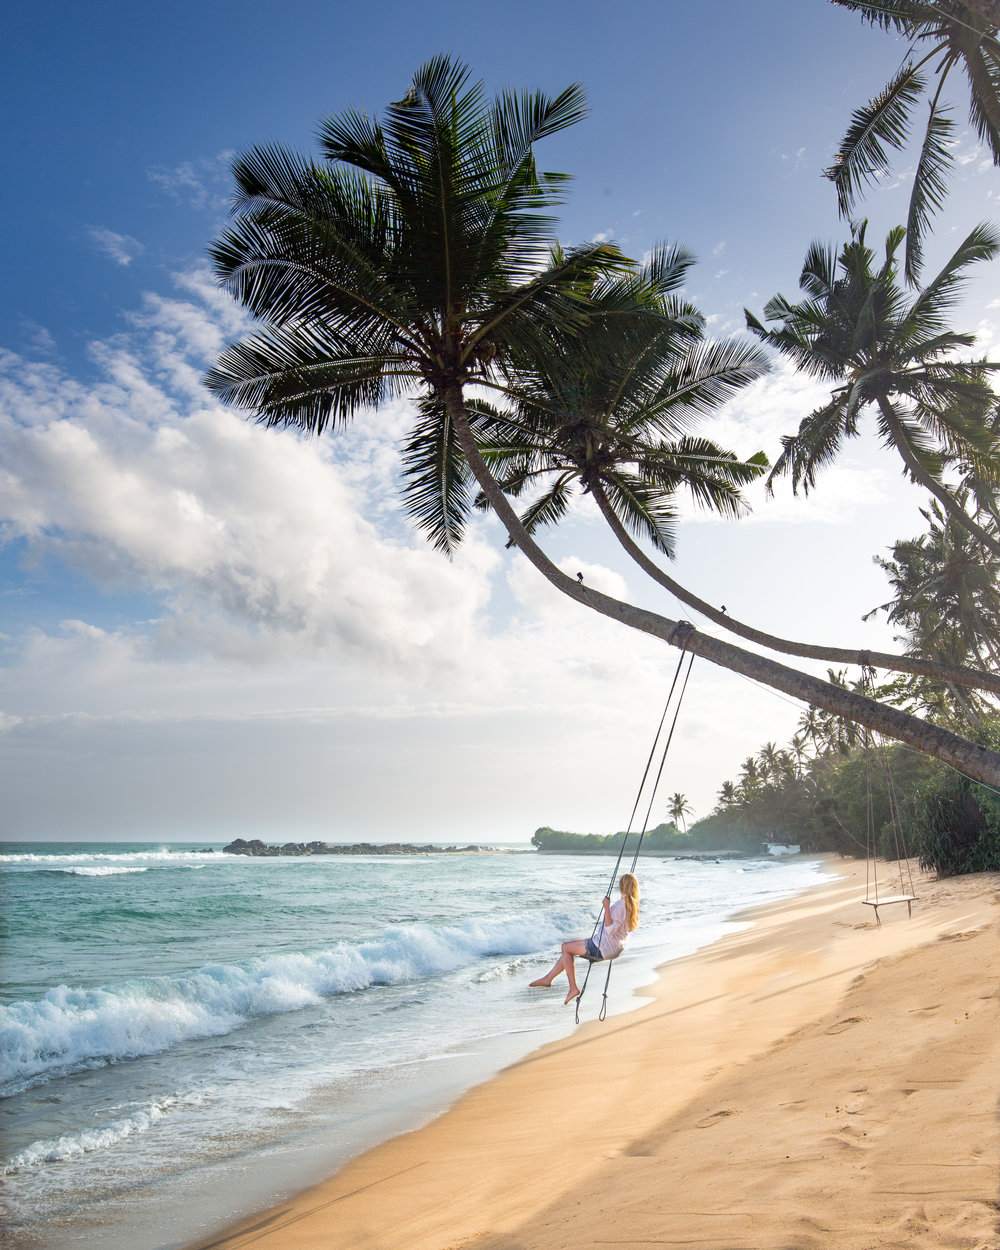 Instagrammable spots in Sri Lanka: Mahi Mahi Beach Swing